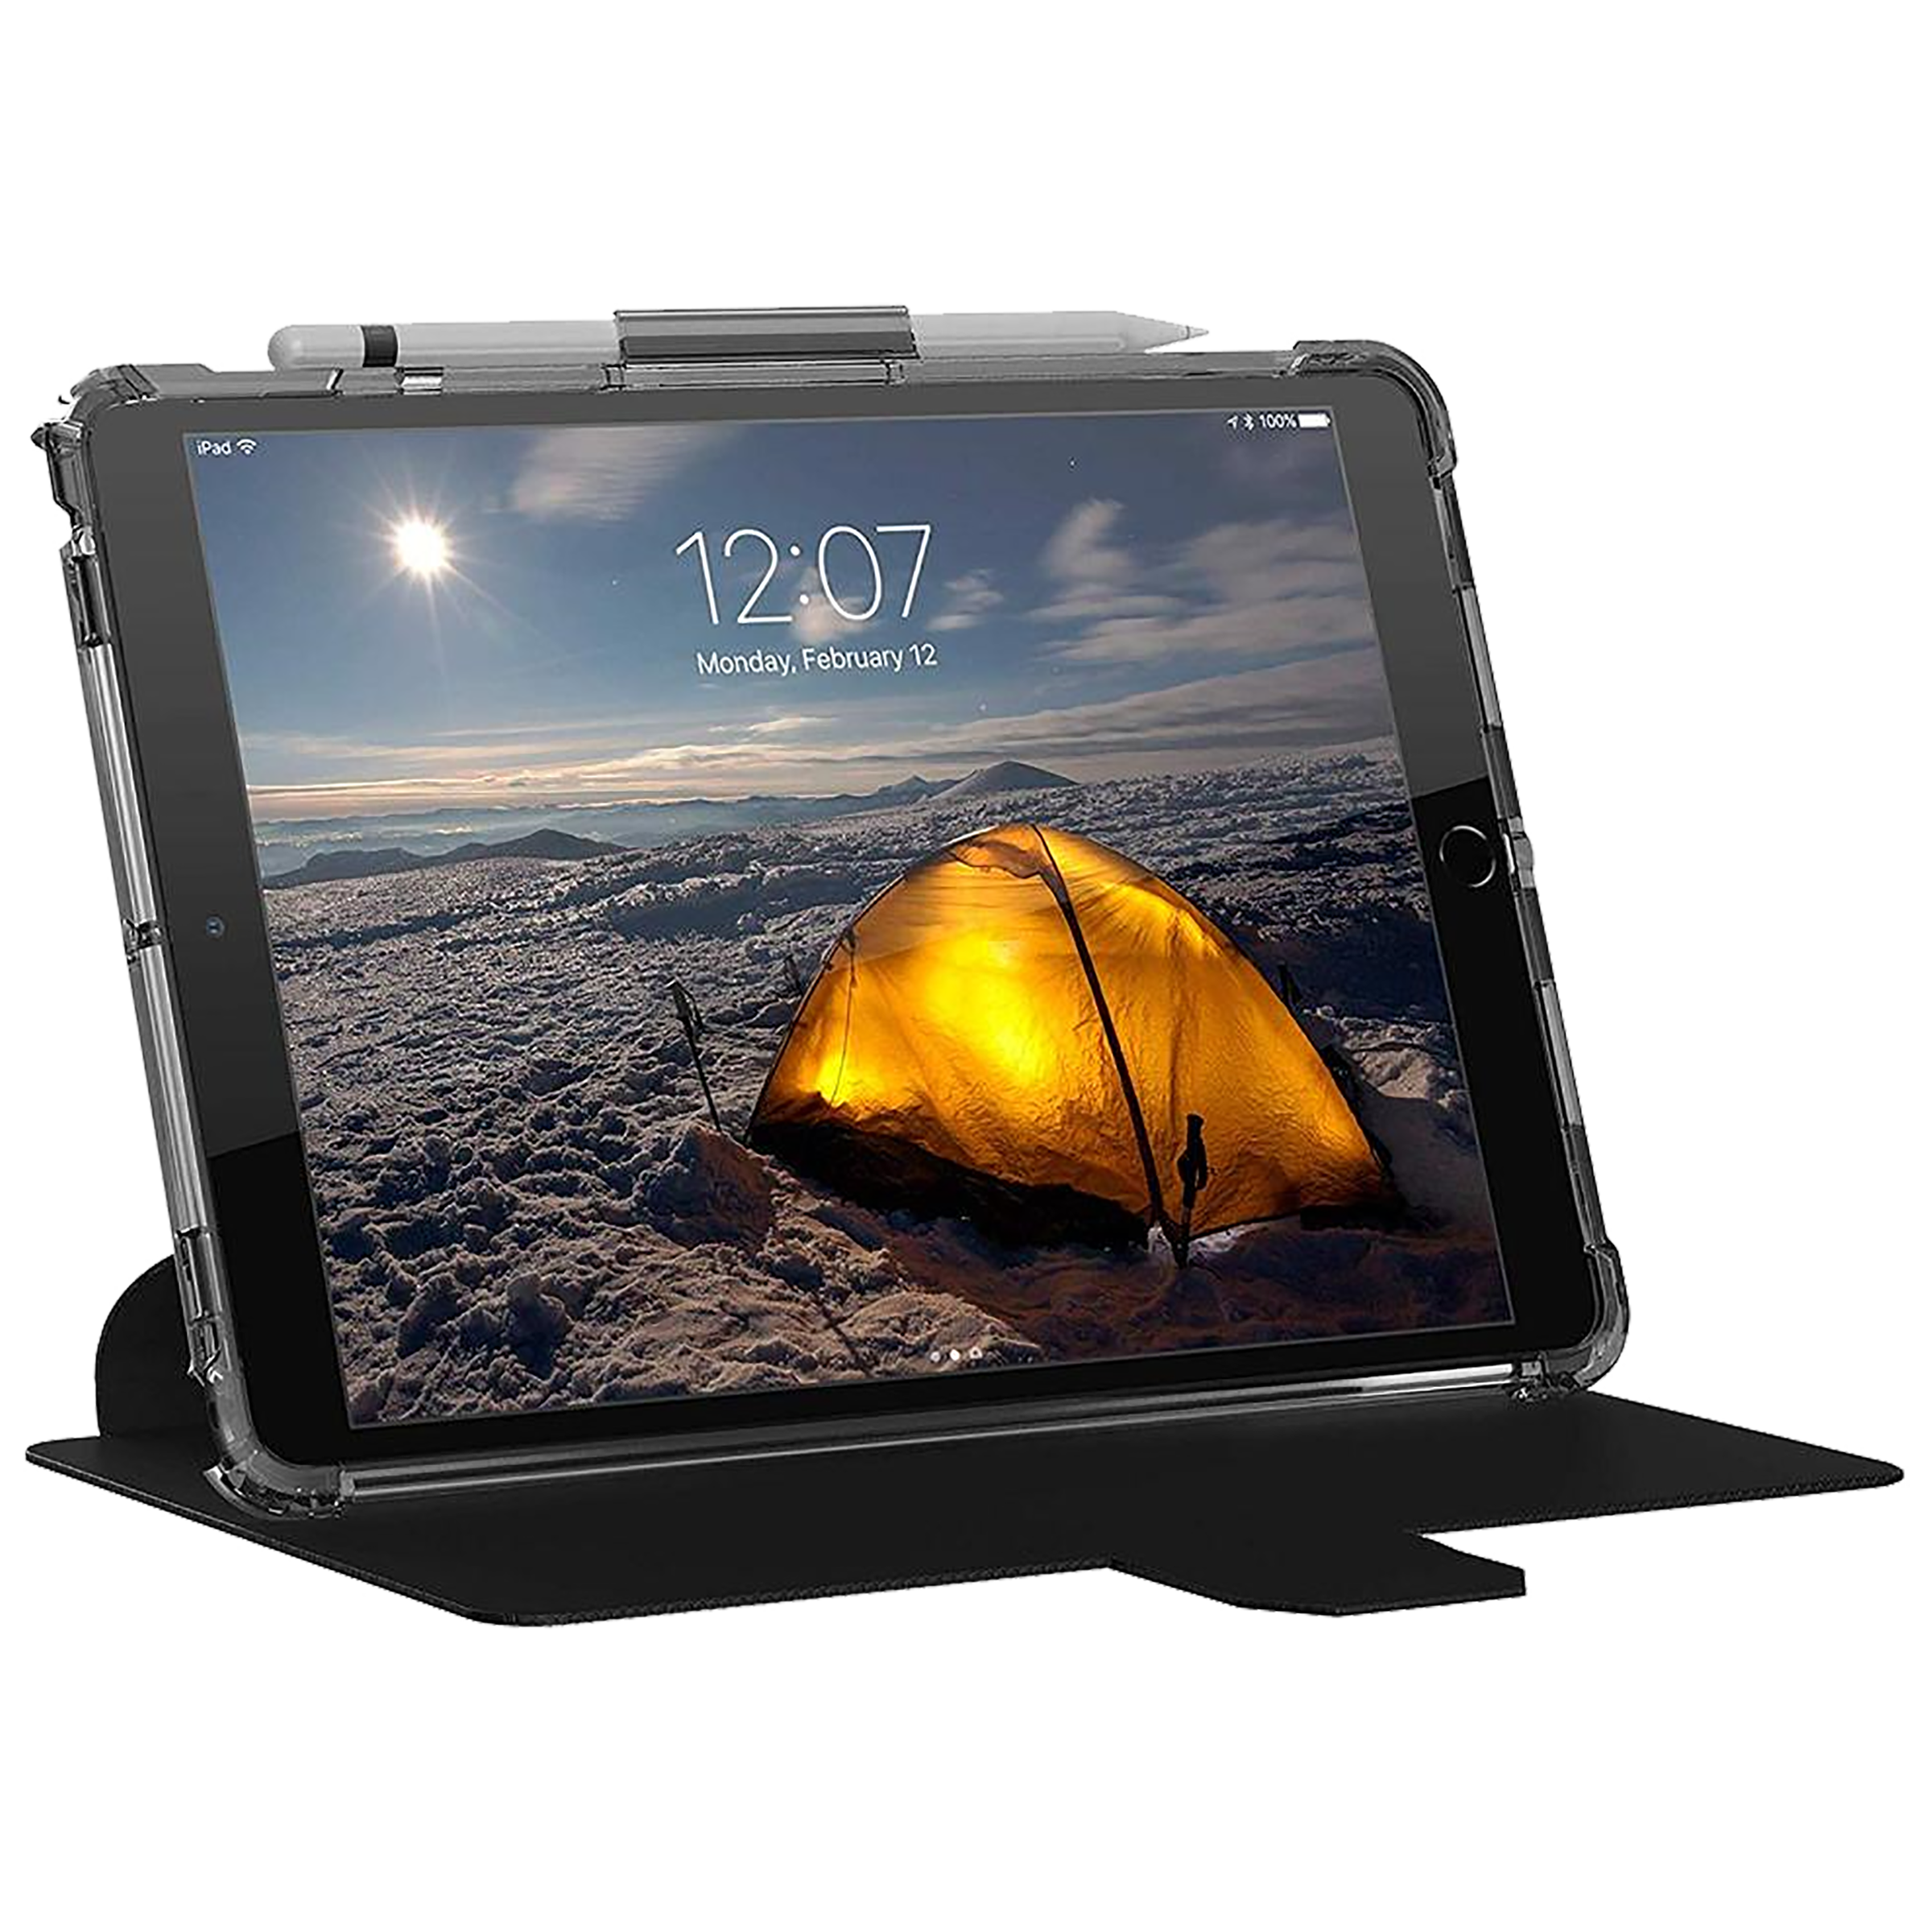 UAG Plyo Polycarbonate Back Case With Stand For iPad Pro 10.5 Inch (Military Drop Tested Protection, UGPY_IPD105_IC, Ice)_1